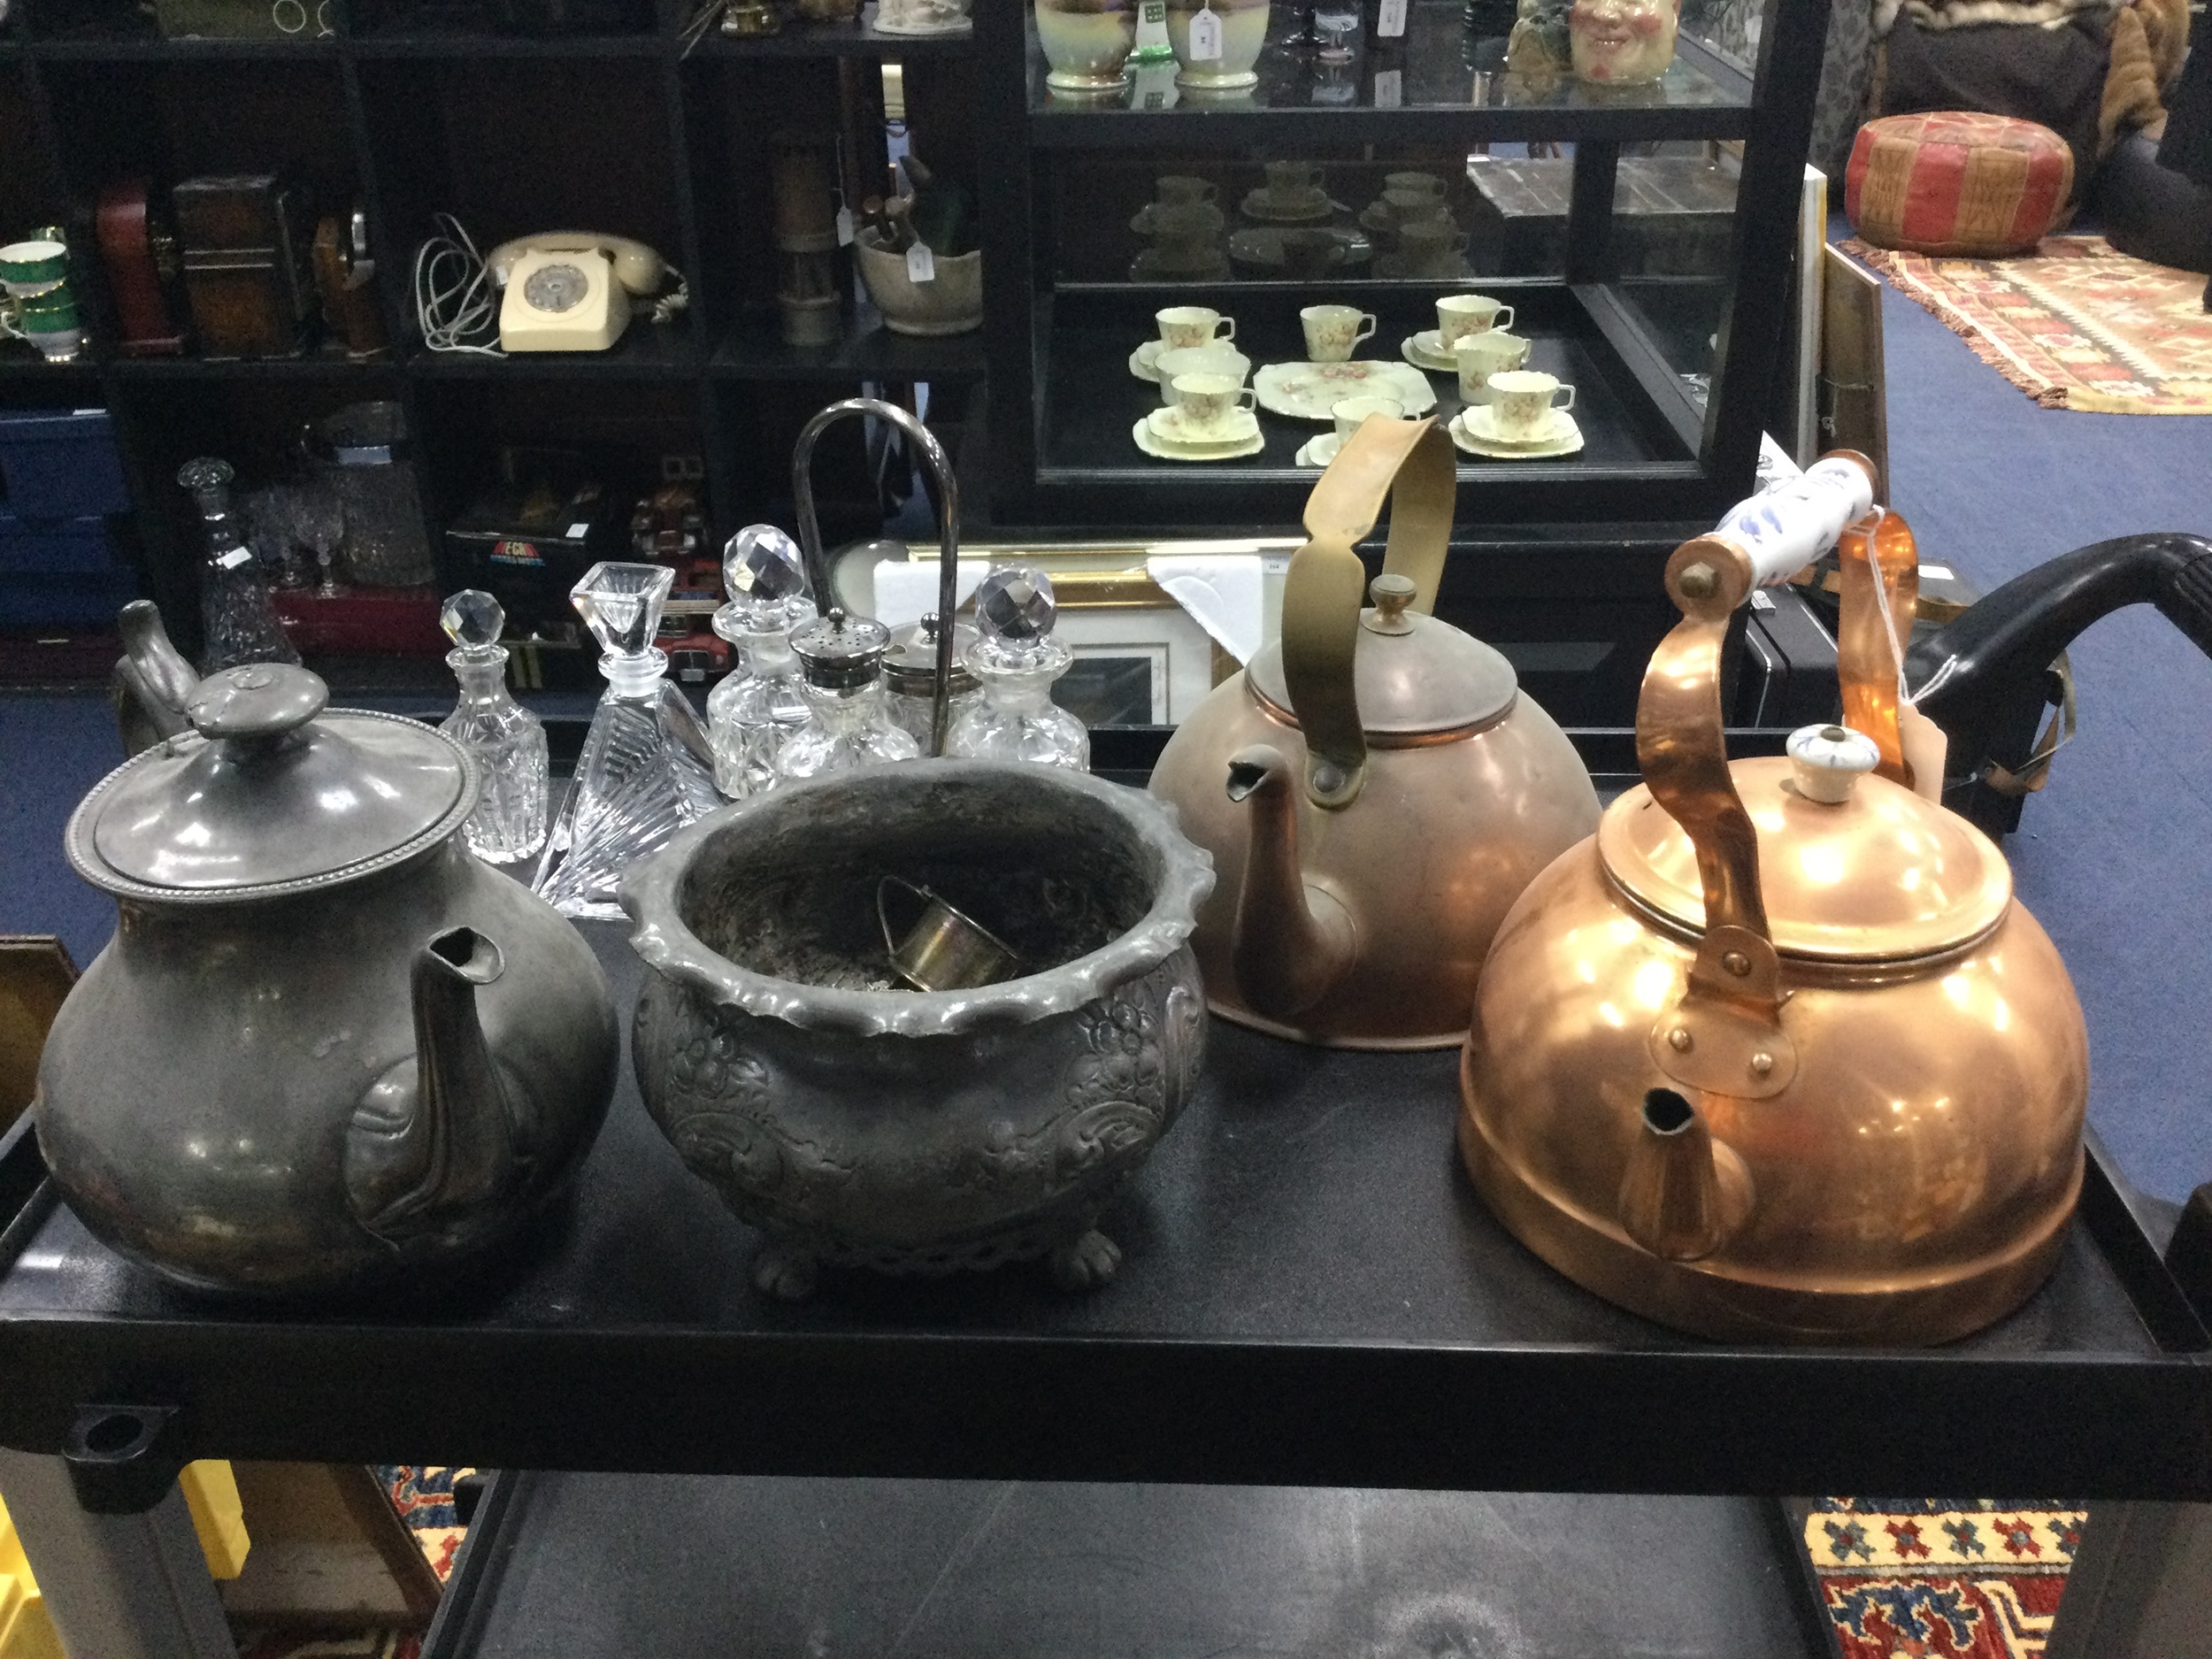 A LOT OF TWO COPPER KETTLES AND OTHER SILVER PLATE AND PEWTER ITEMS